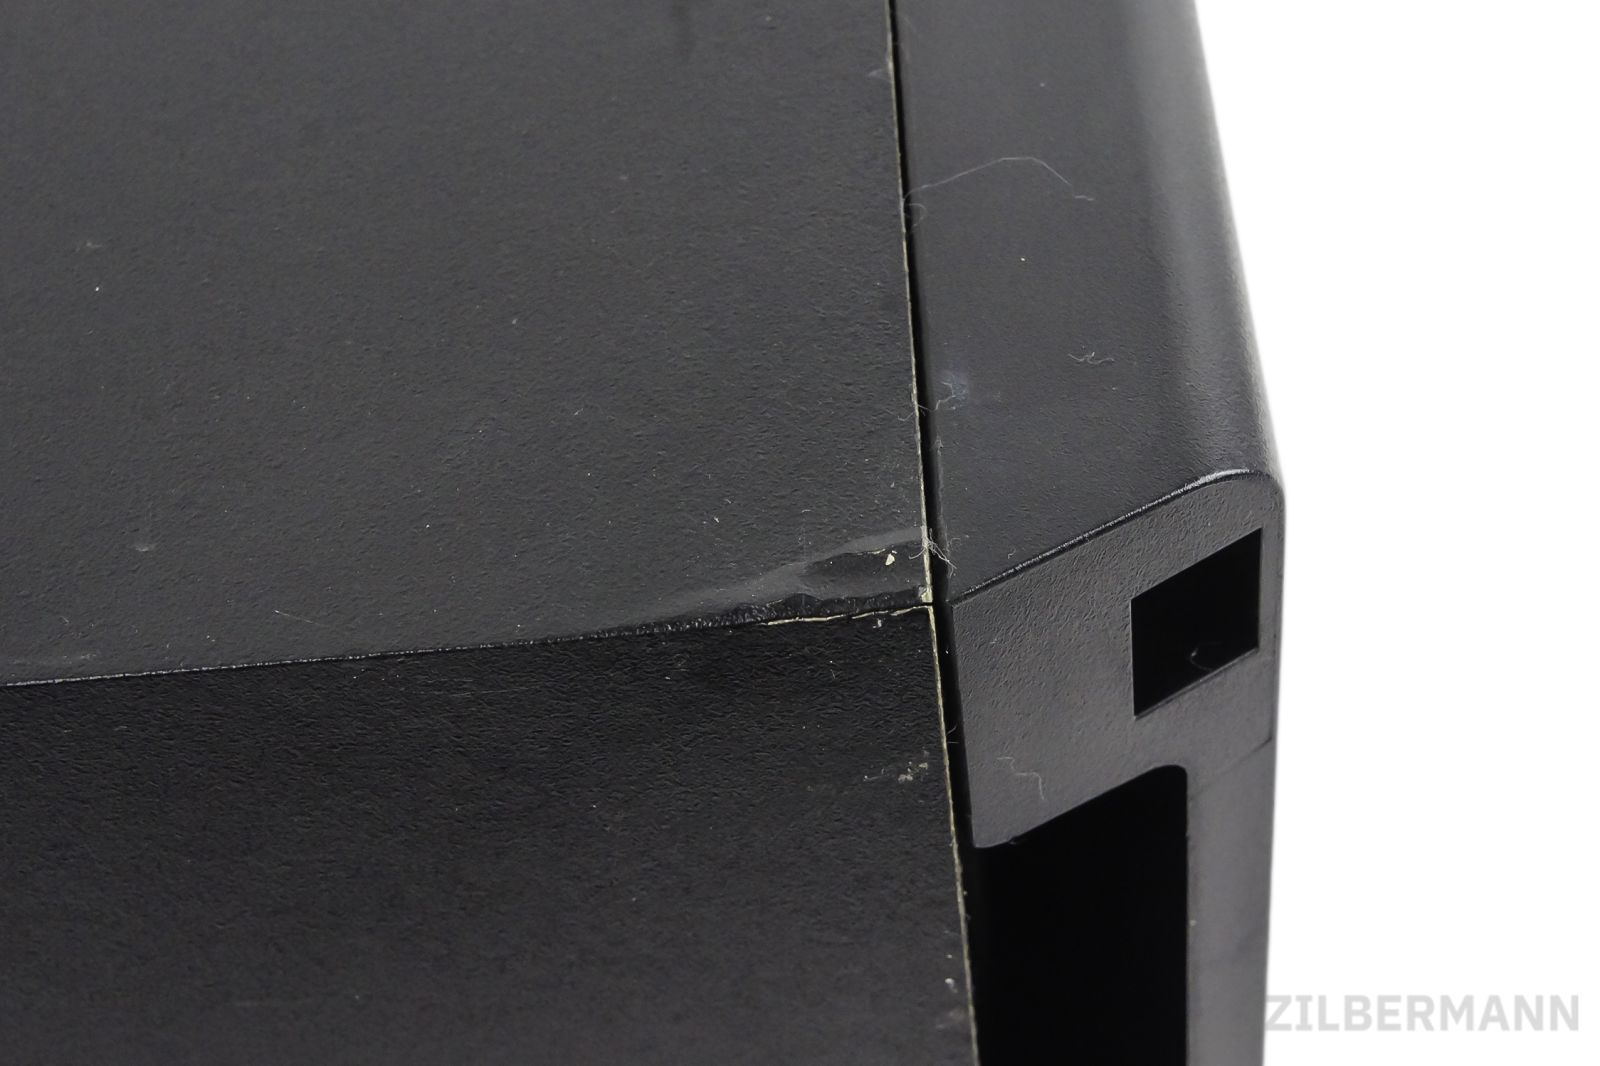 Bose_Acoustimass_6_Series_II_5.1_Subwoofer_07